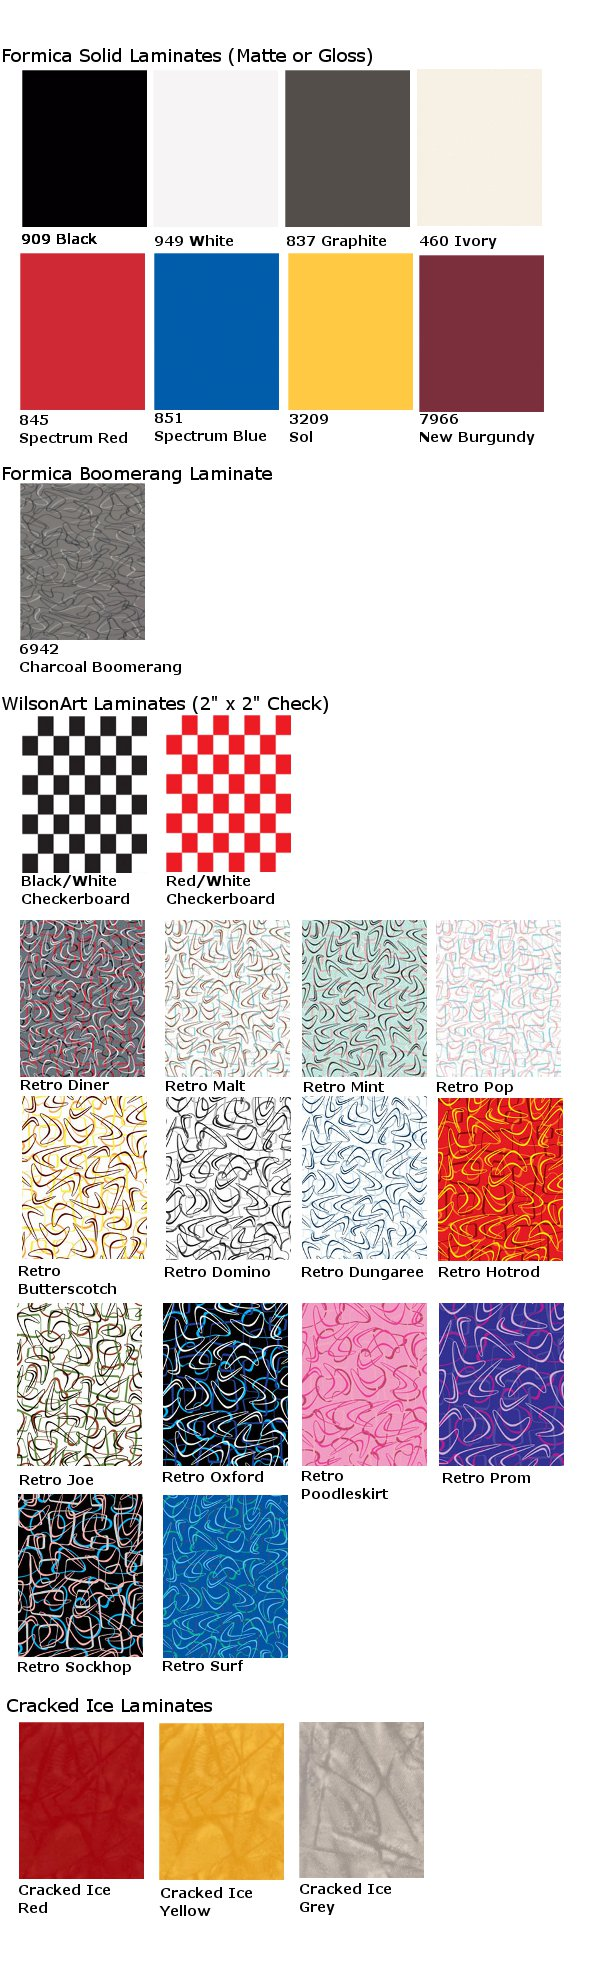 Table Laminate Swatches